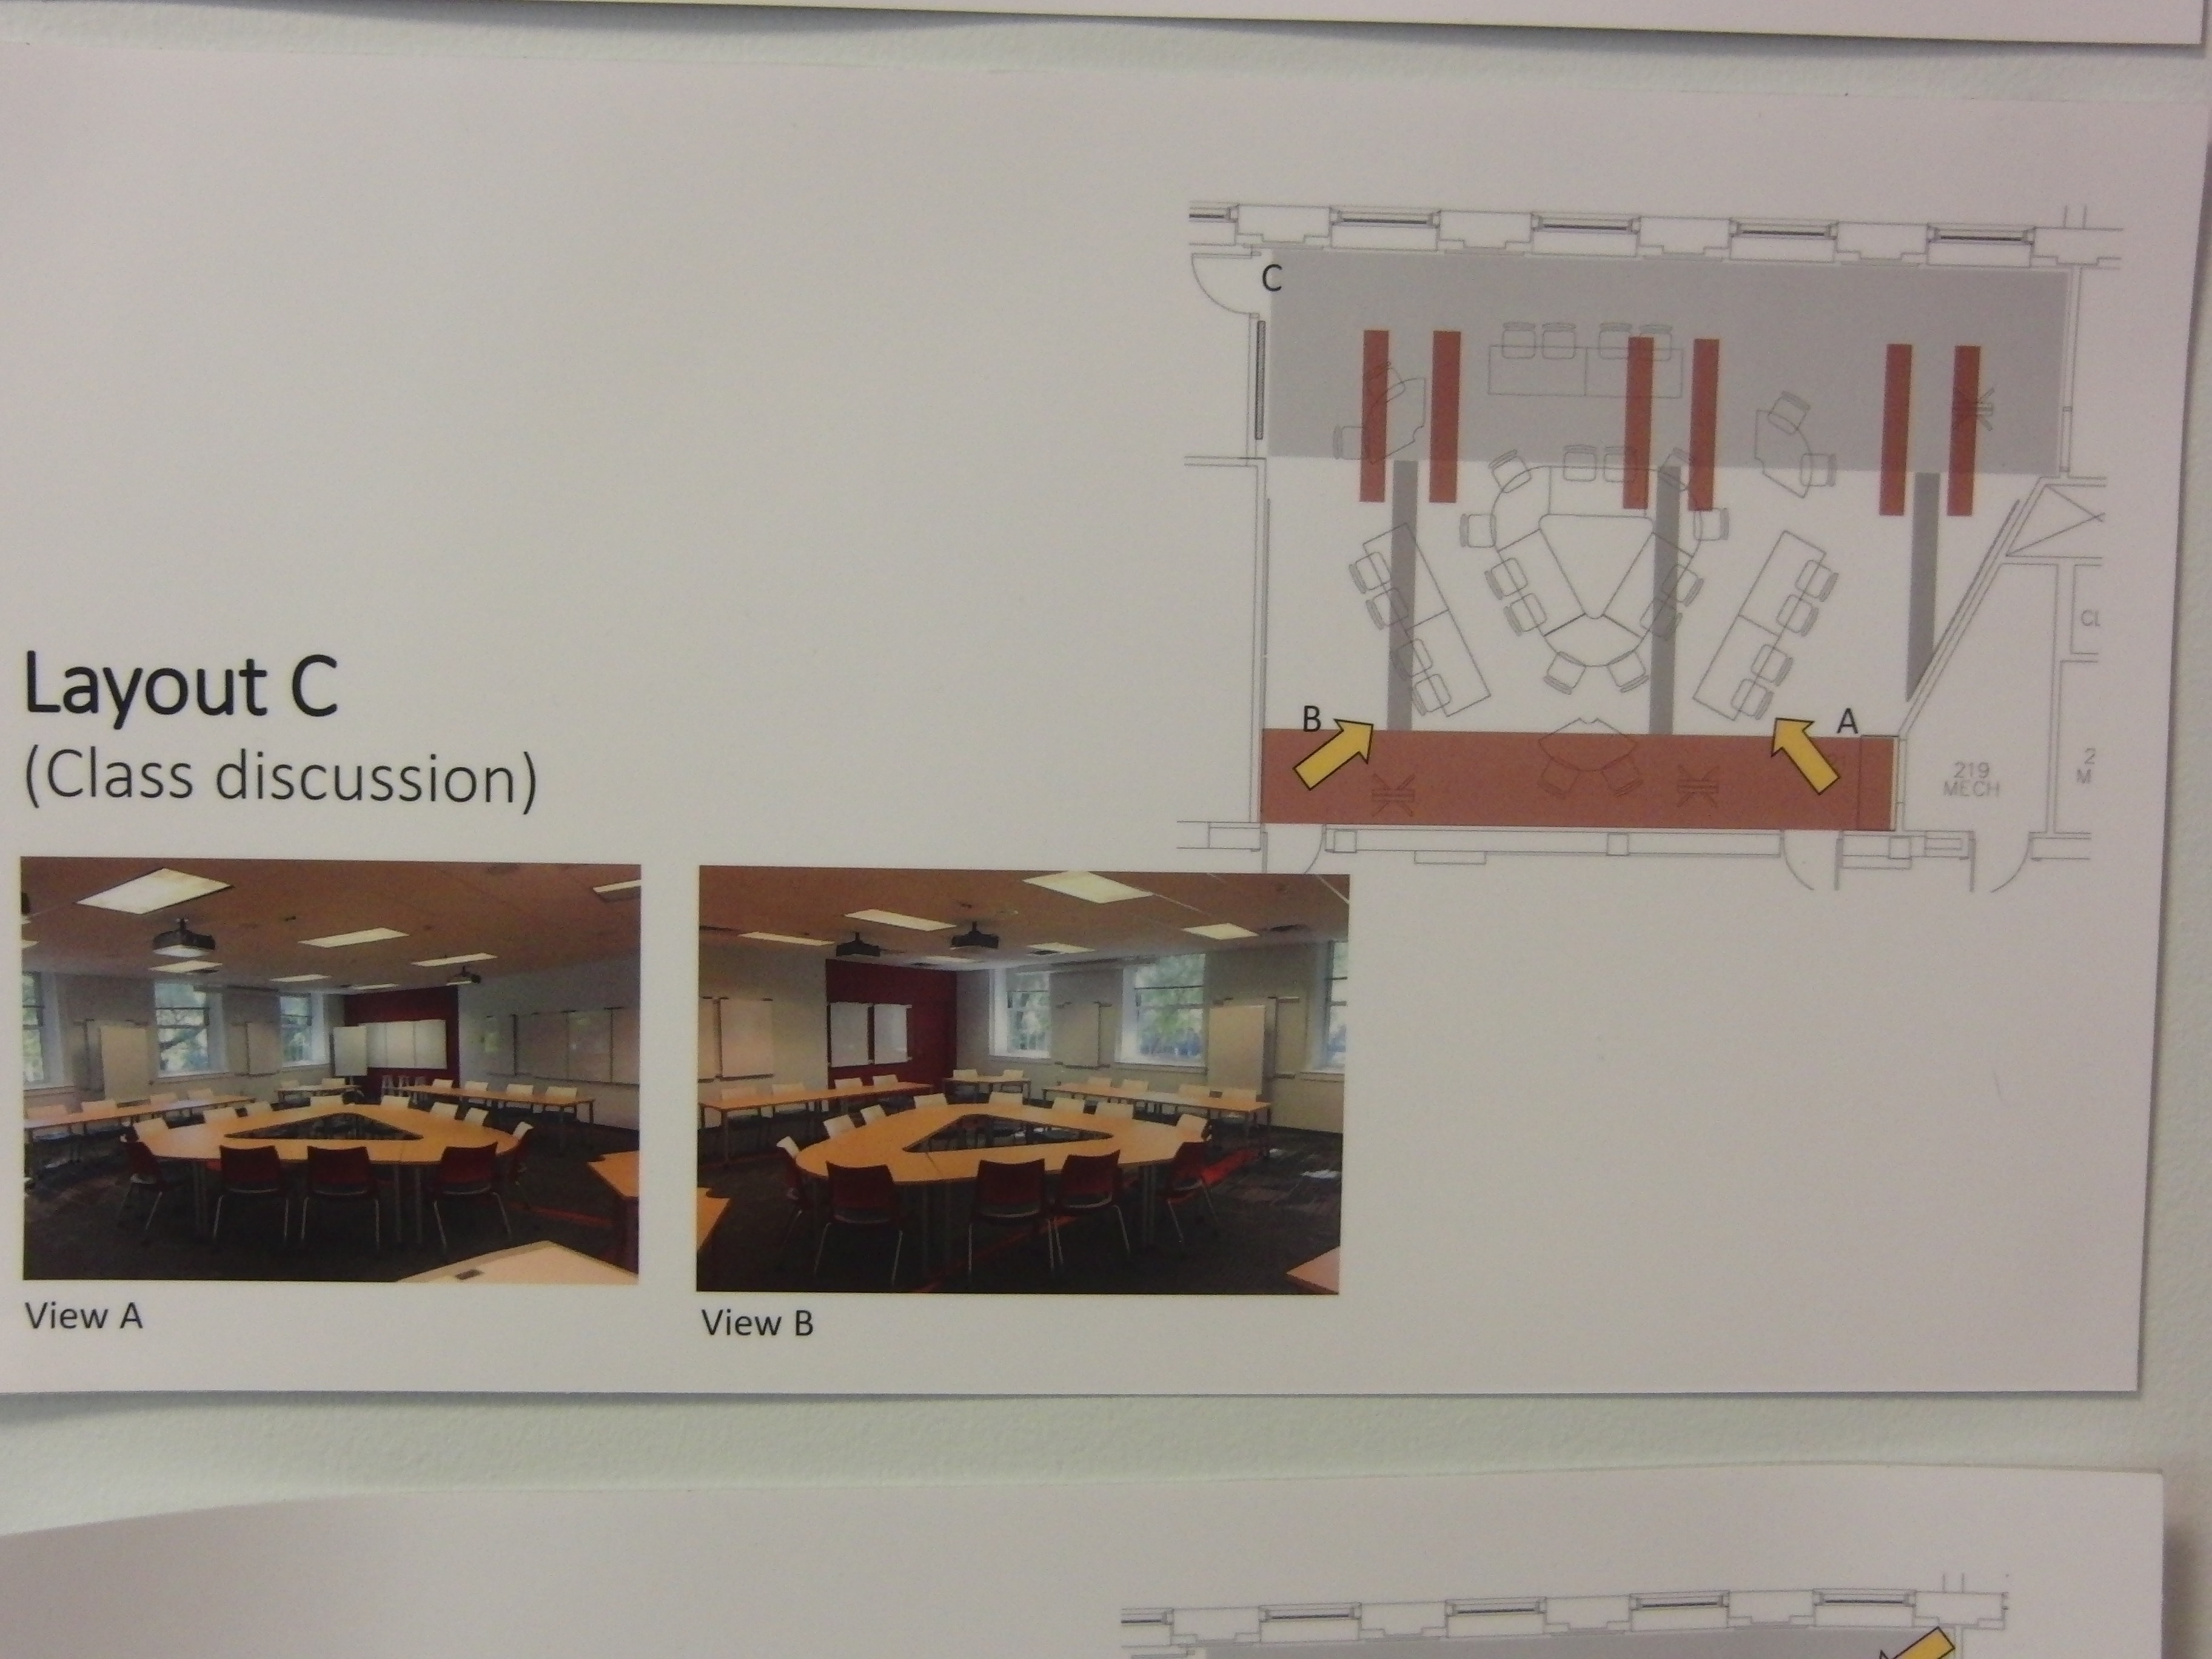 Photo of room configuration for class discussion described as layout c